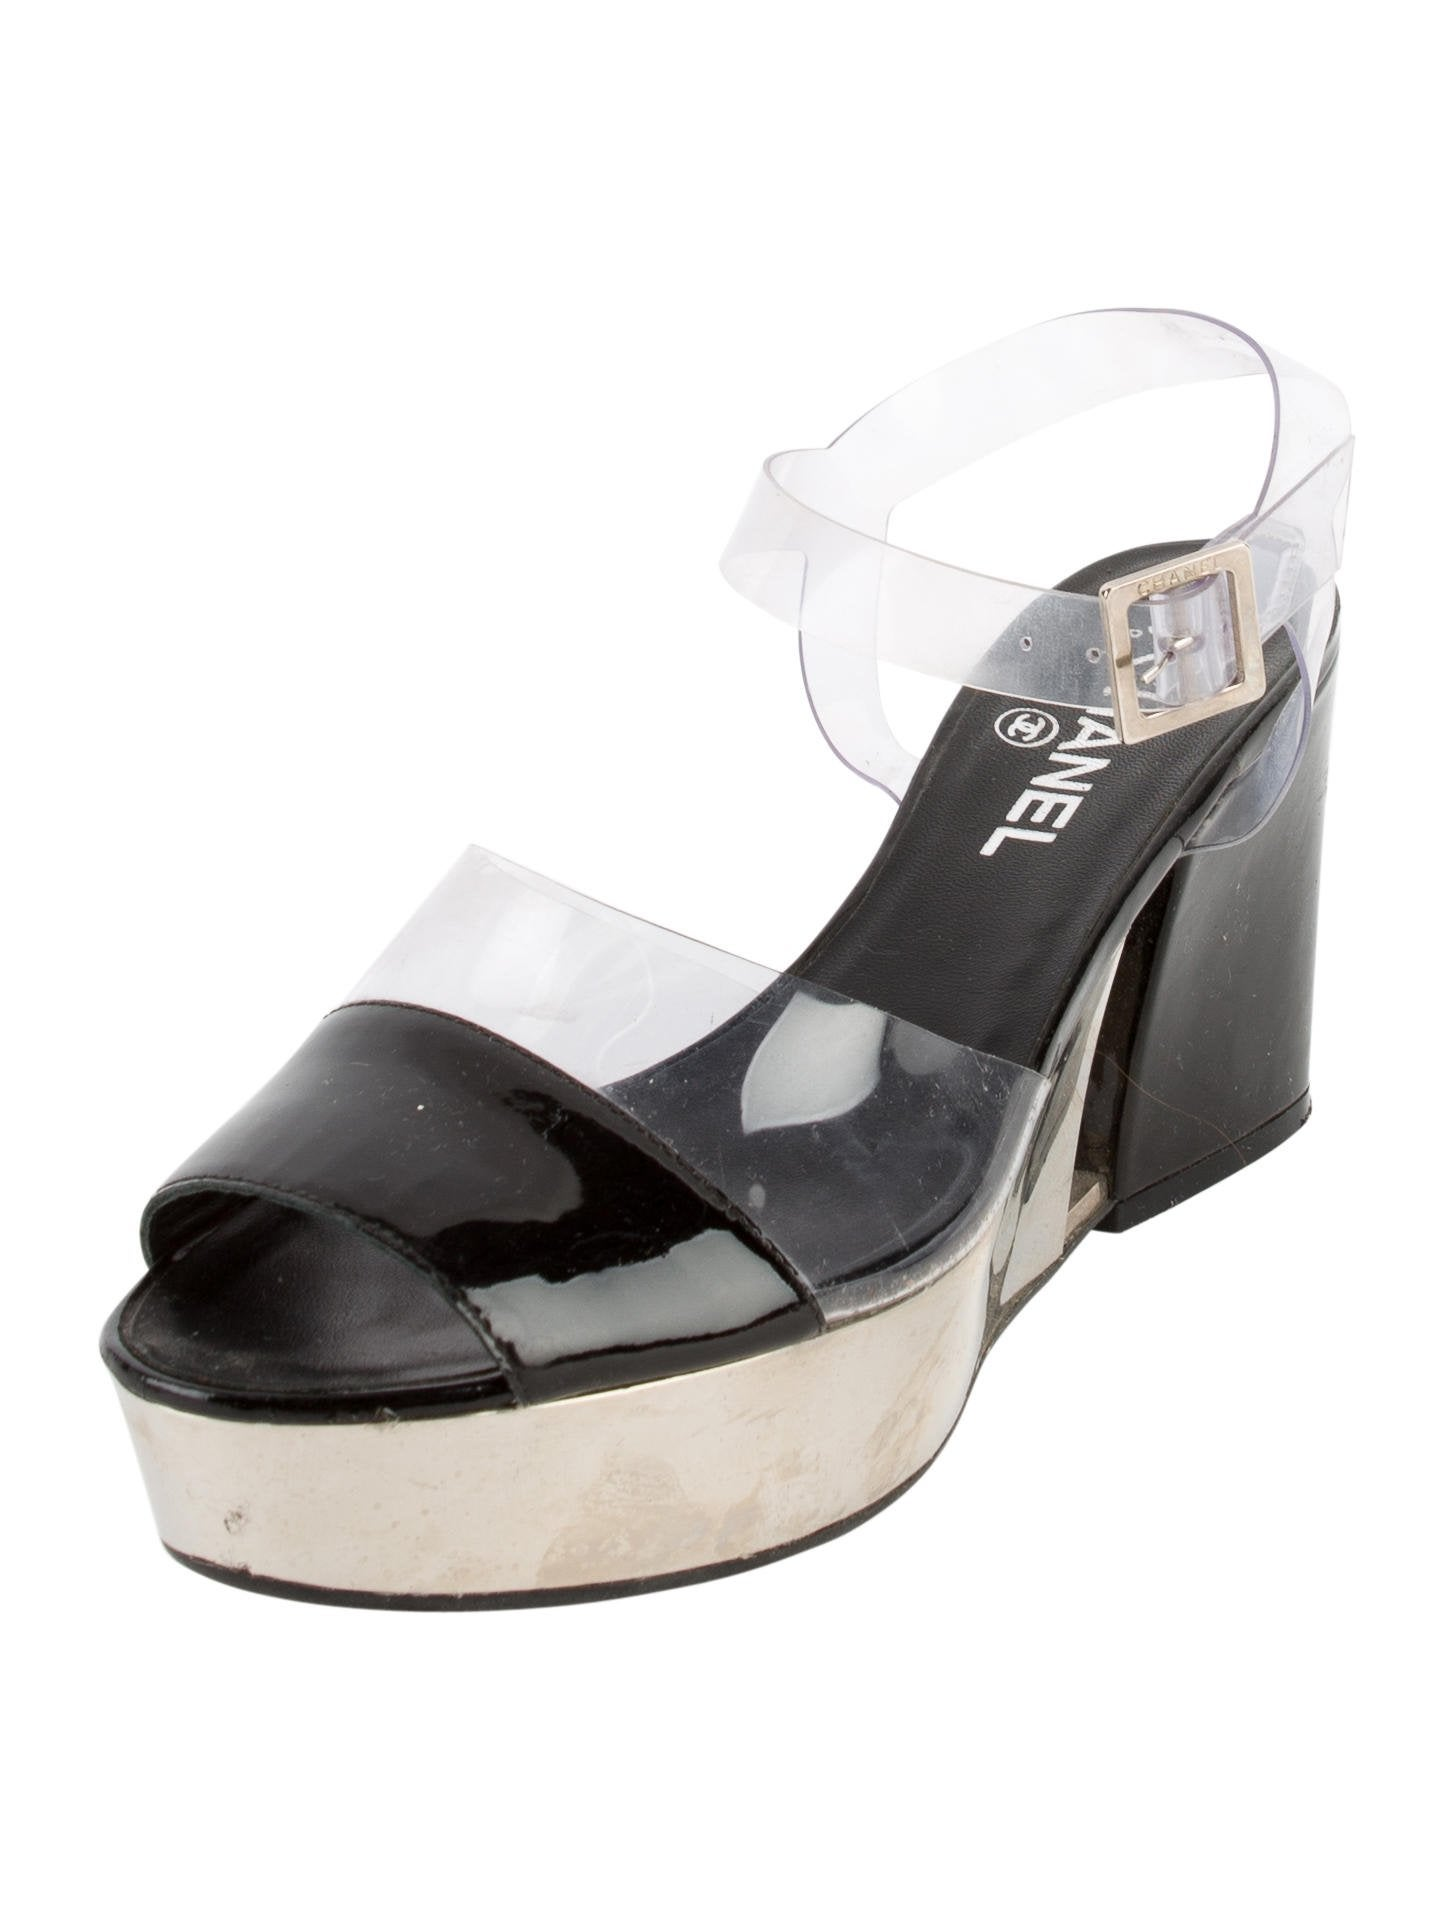 chanel pvc platform wedges shoes cha193200 the realreal